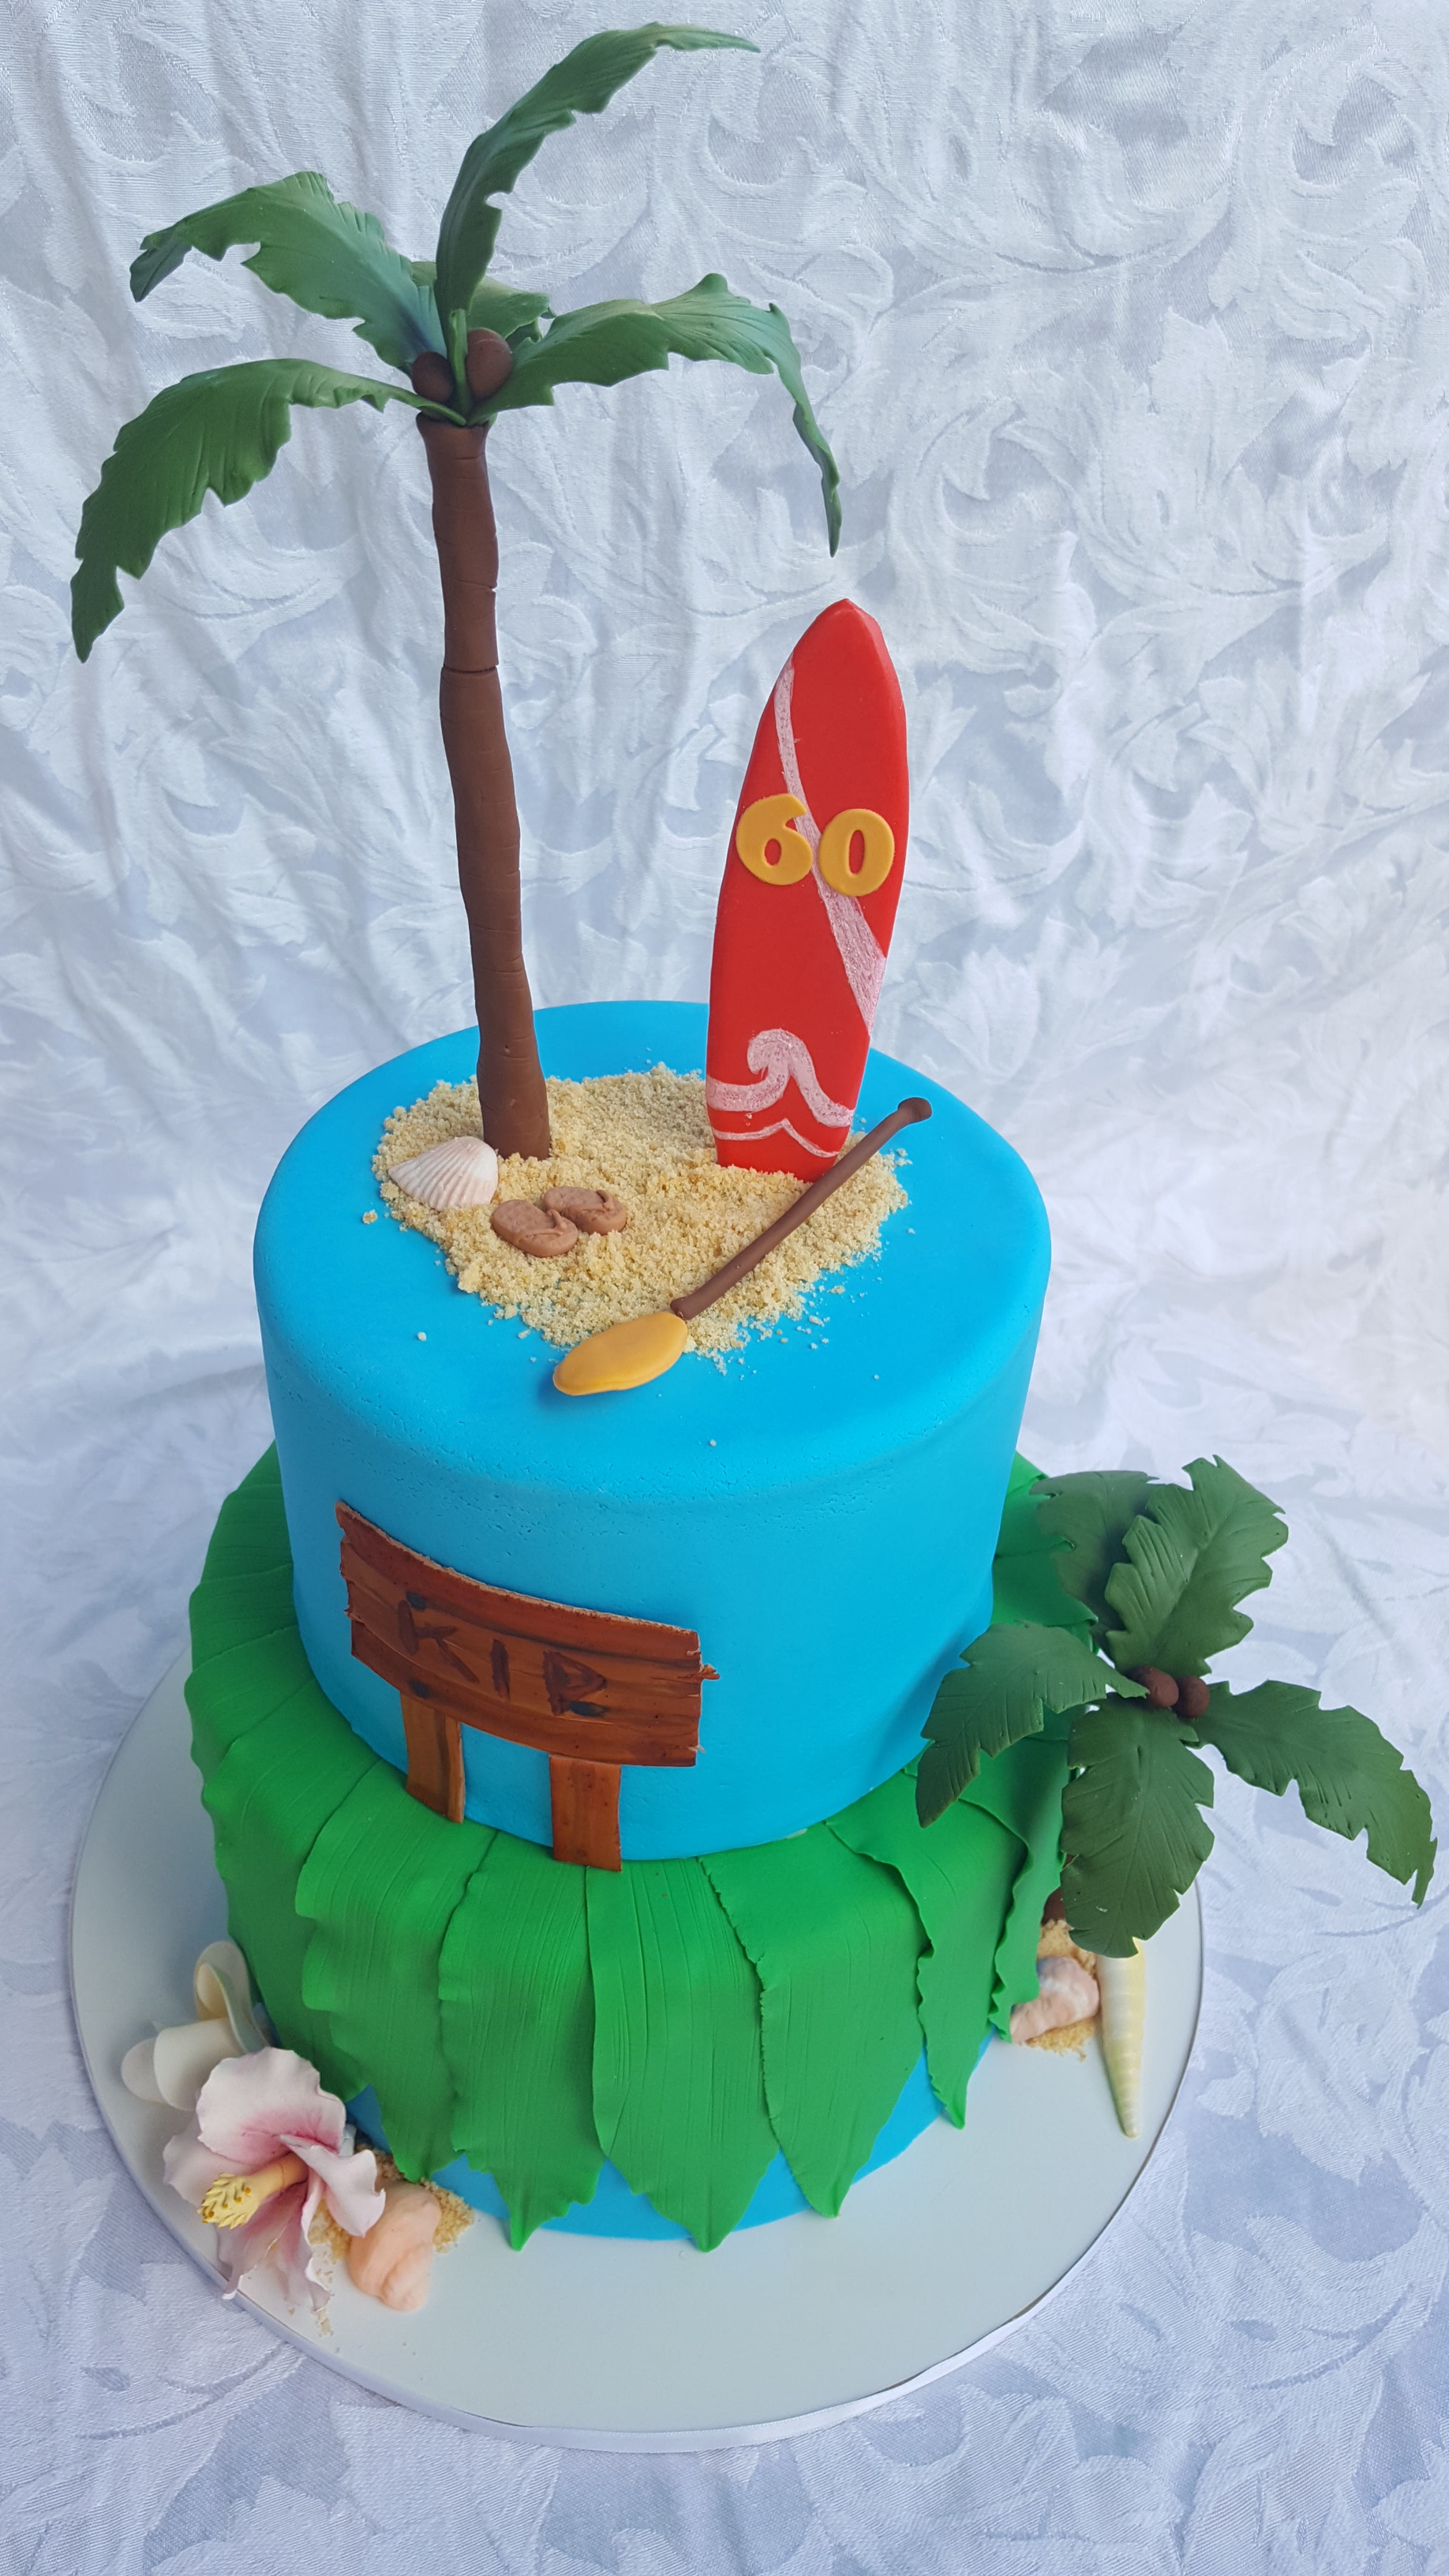 Copy of Two tier rolled fondant birthday cake with sugar palm tree and surf board Hilo Hawaii Big Island Kailua-Kona